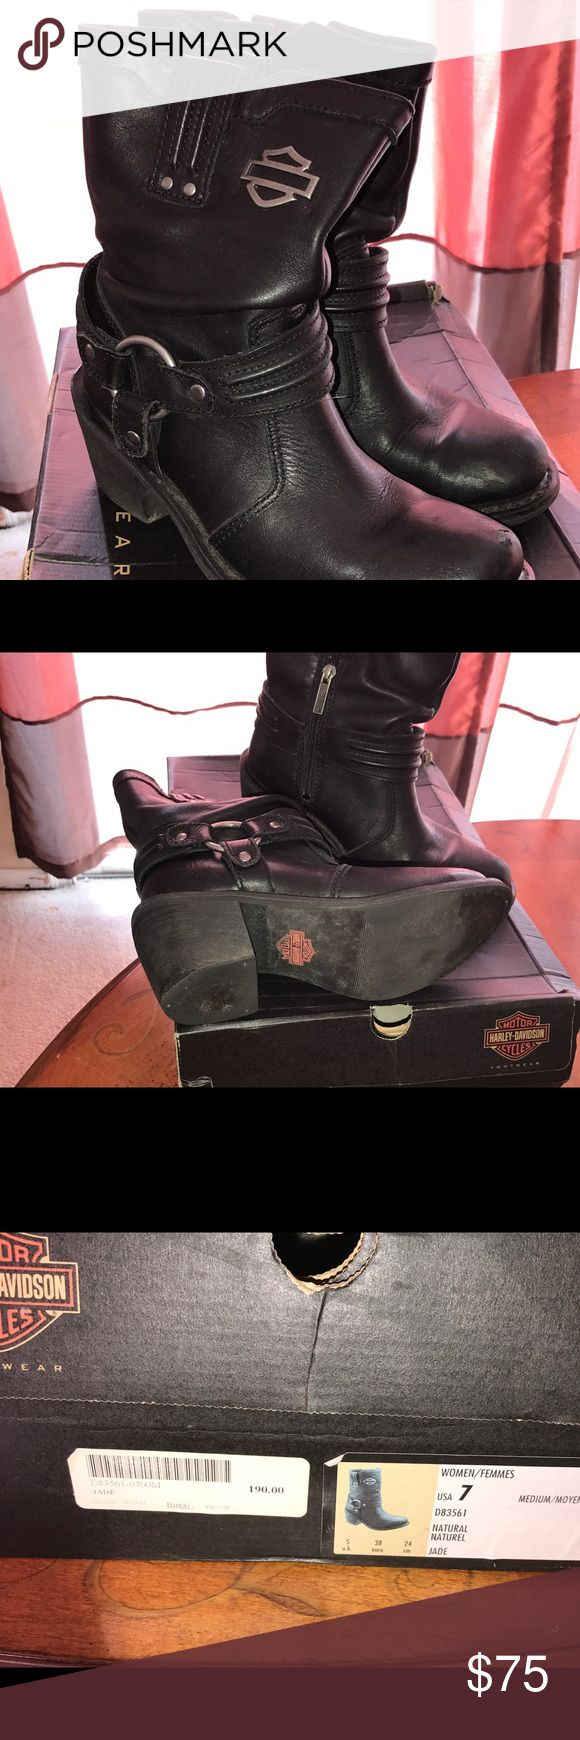 Women's Harley Davidson boots Women's Harley Davidson leather riding boots size 7.  Light wear markings.  Great fit. Harley-Davidson Shoes Combat & Moto Boots